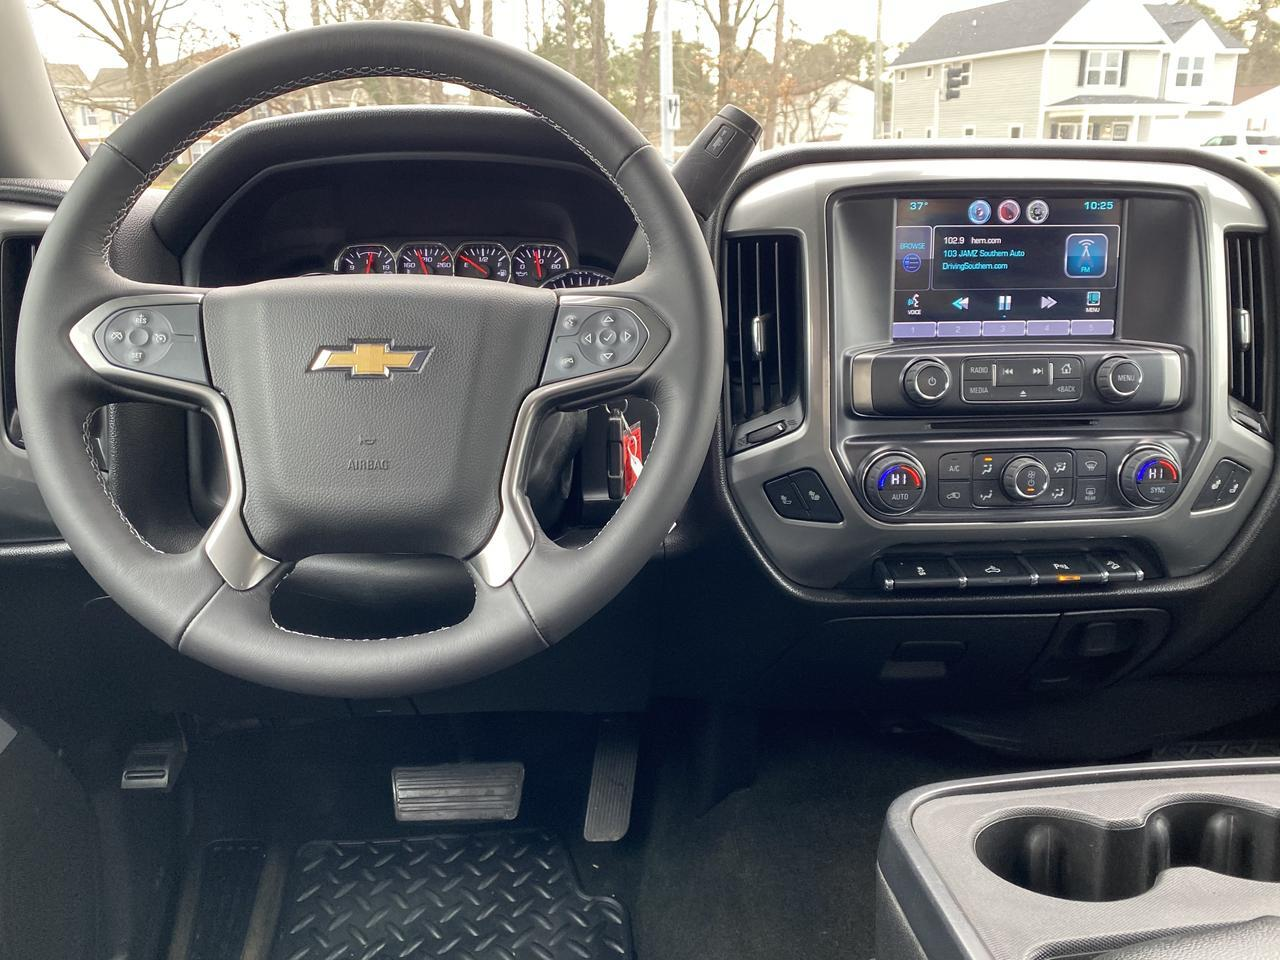 2015 CHEVROLET SILVERADO 1500 LT DOUBLE CAB 4X4, WARRANTY,  Z-71 OFF ROAD PKG, LEATHER, HEATED SEATS, BACKUP CAM, CLEAN! Norfolk VA